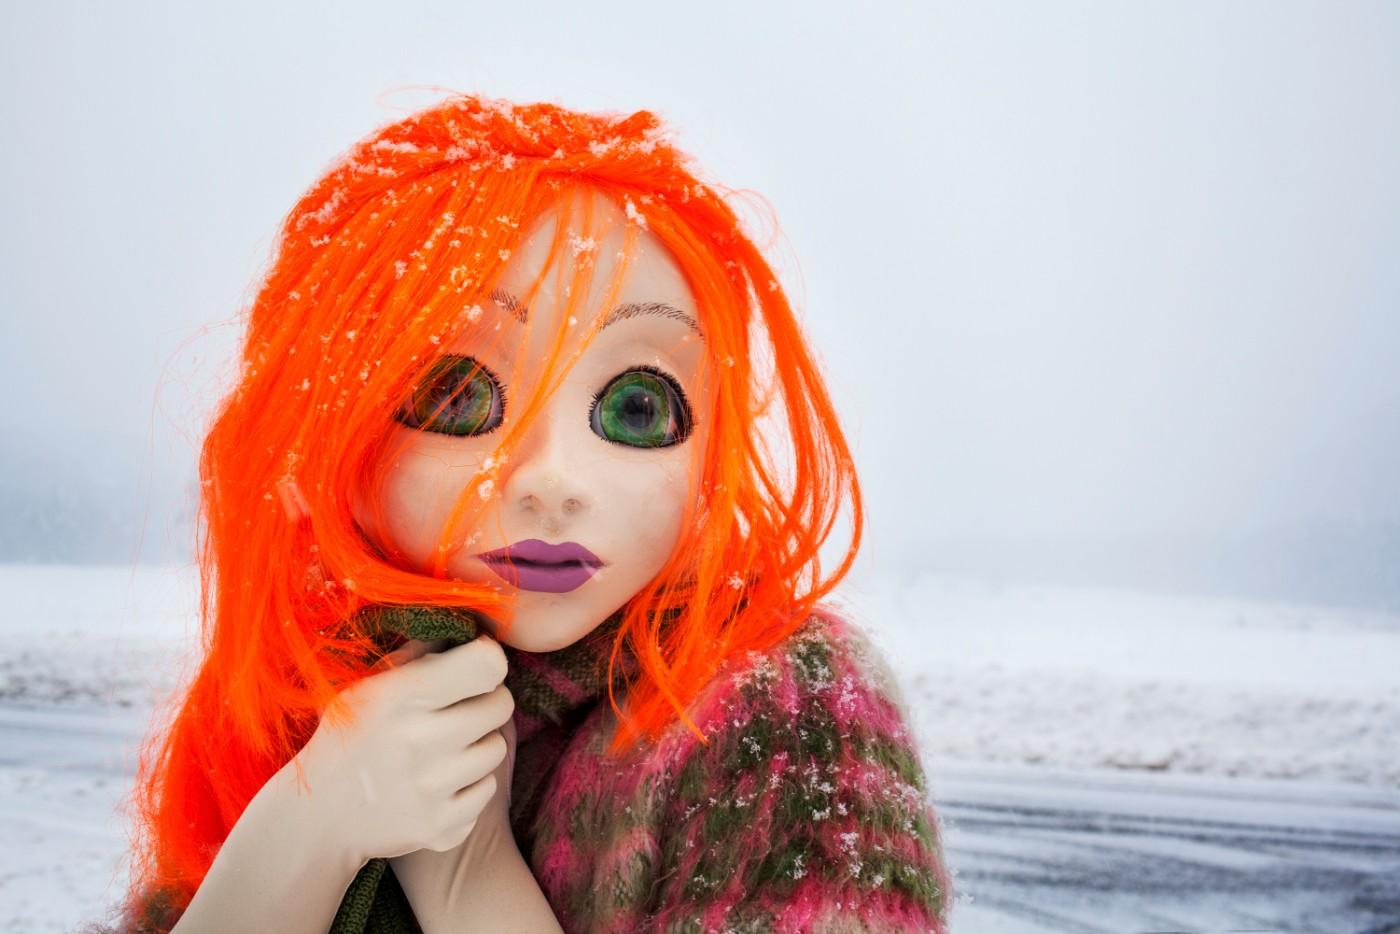 Laurie Simmons, Orange Hair/Snow/Close Up, 2014